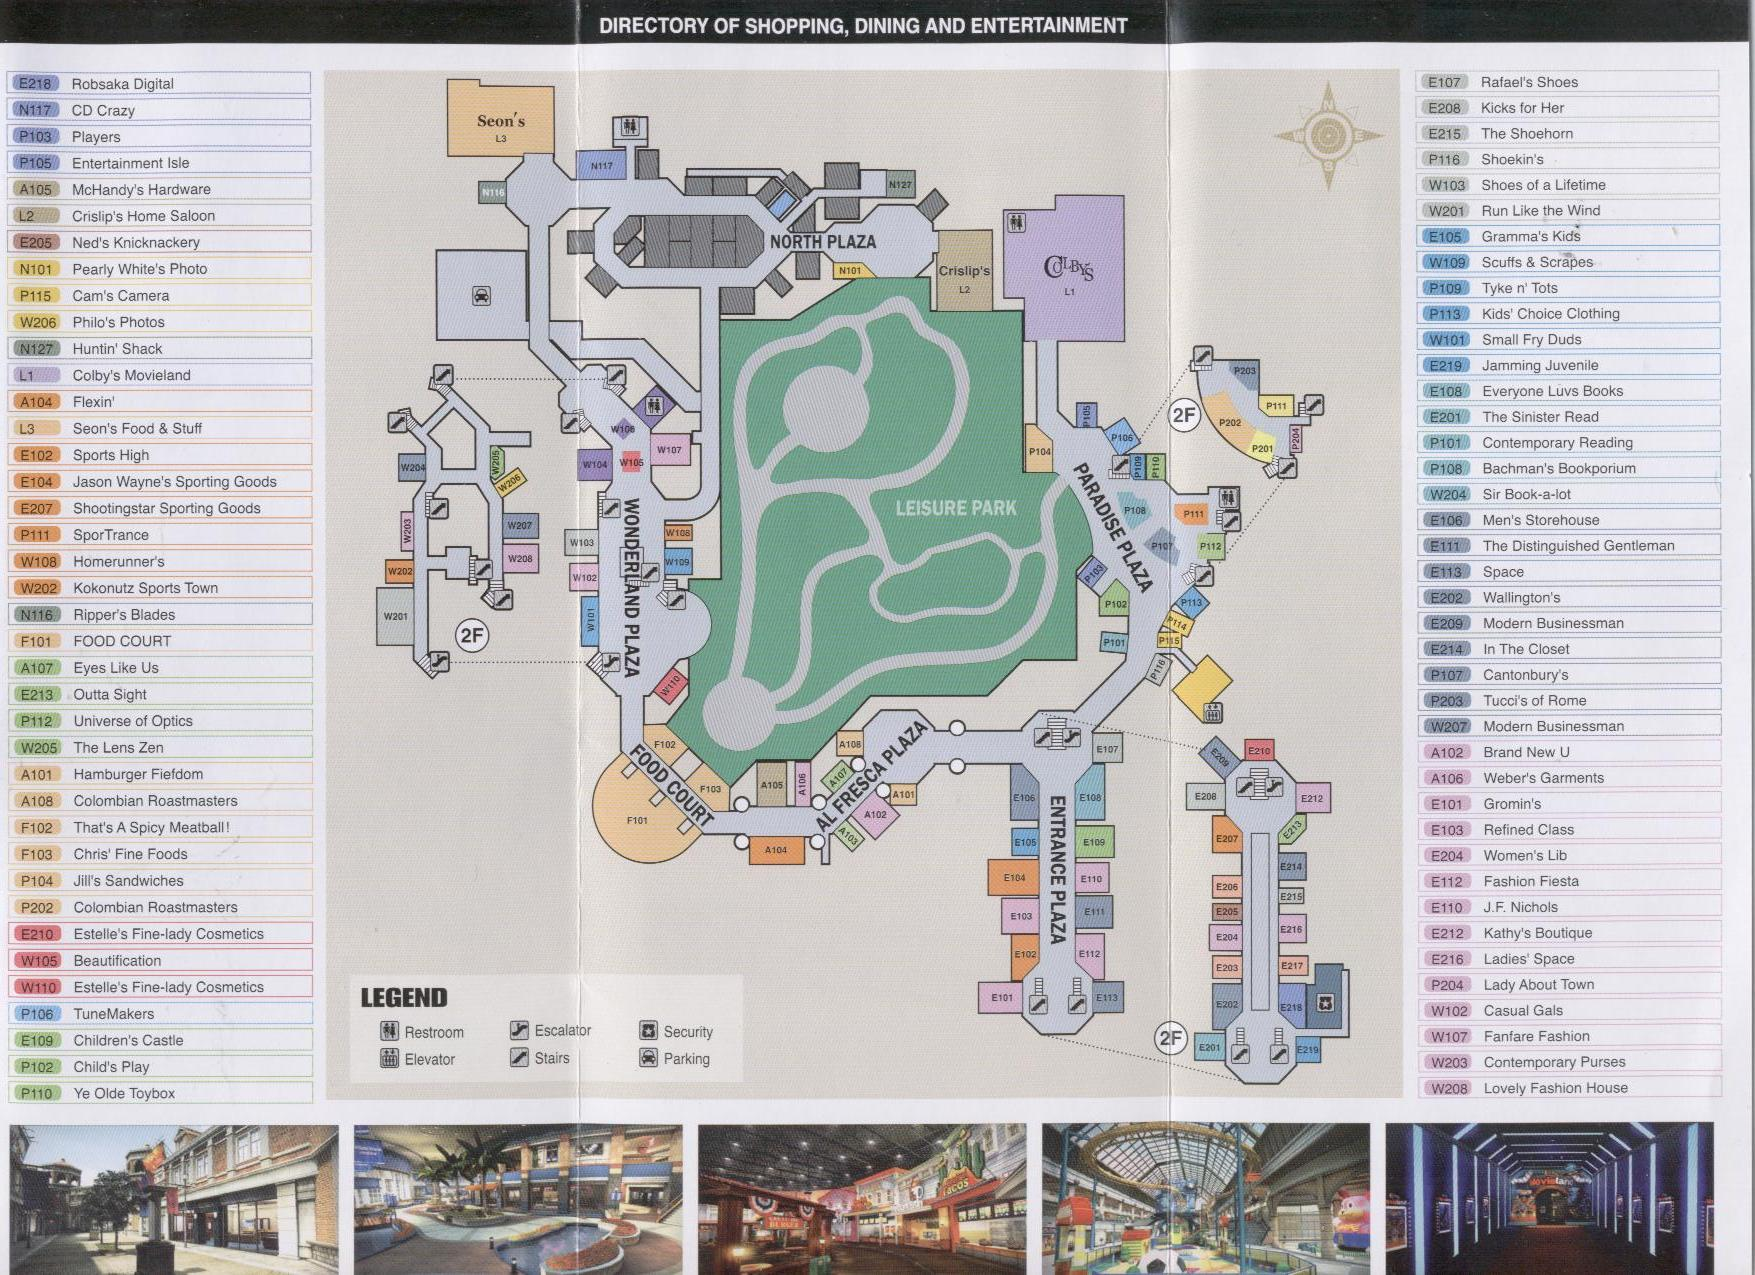 Image - Dead Rising Map.jpg | Dead Rising Wiki | FANDOM ... on everybody's gone to the rapture map, dante's inferno map, left 4 dead map, hyrule warriors map, sunset overdrive map, midtown madness map, dead trigger map, crash twinsanity map, red dead map, infamous first light map, grand theft auto: san andreas map, dead island map, crimson alliance map, homefront map, dead space map, l.a. noire map, the evil within map, the walking dead map, mass effect map, h1z1 map,